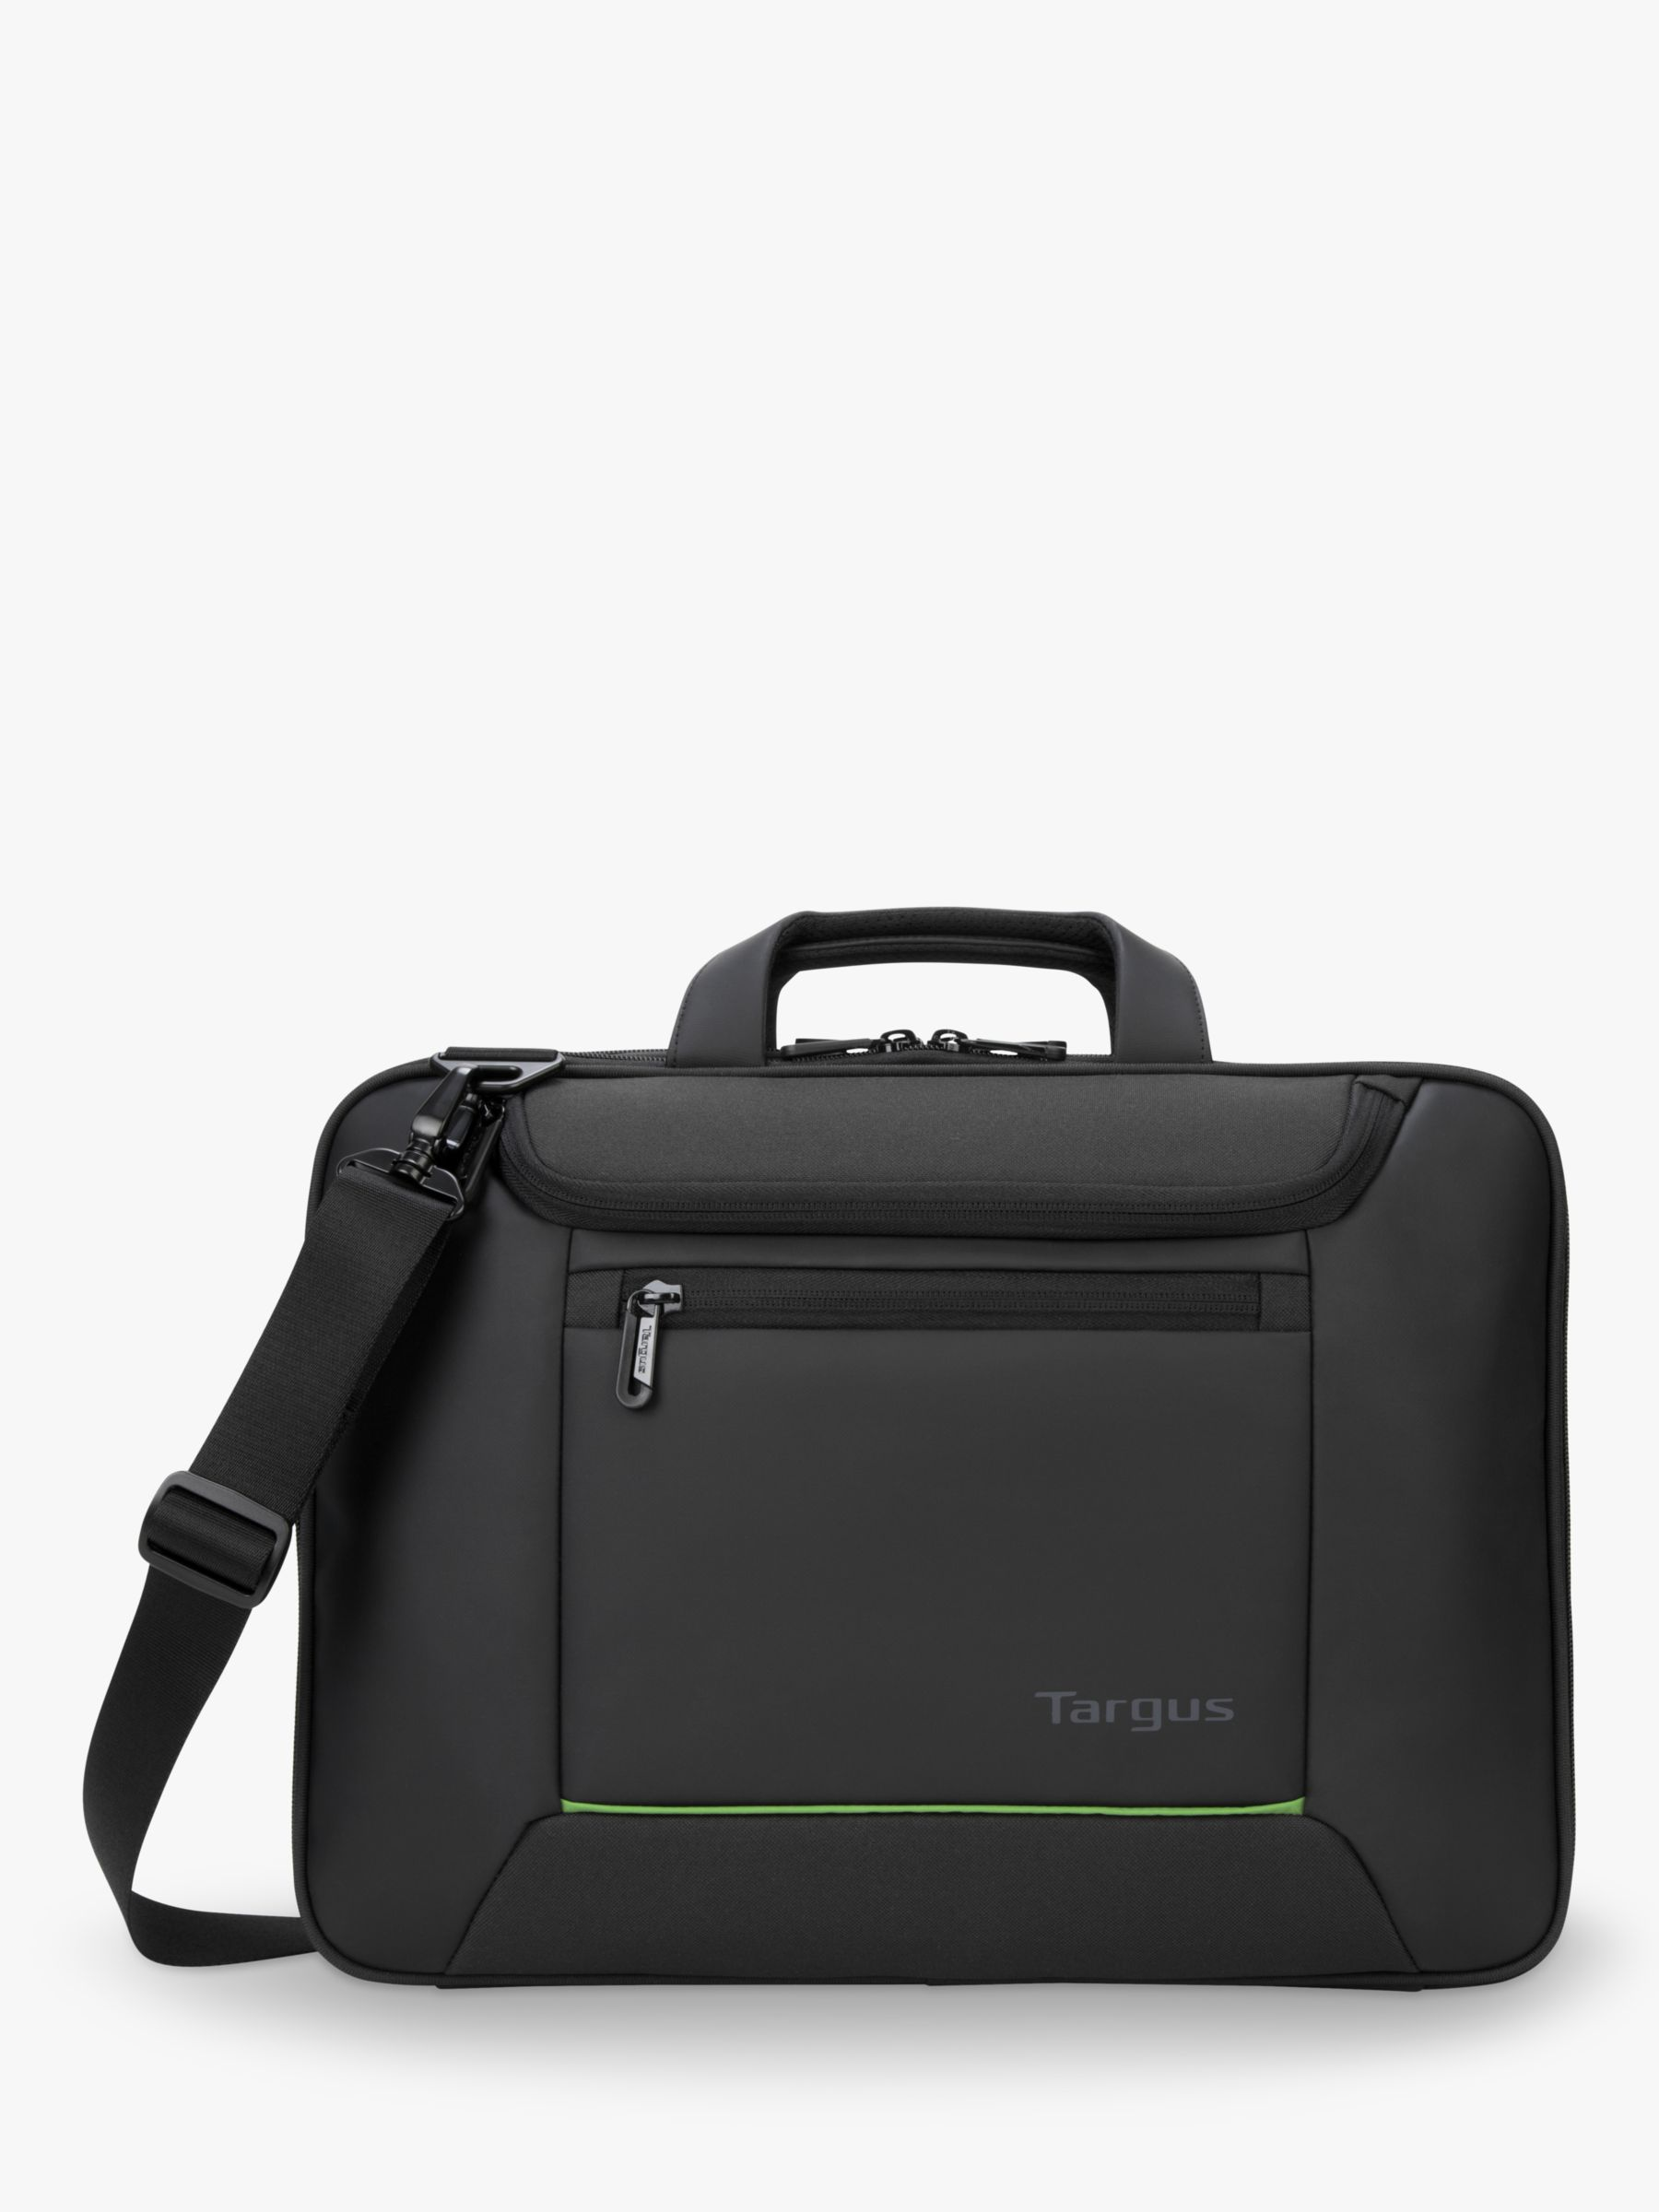 Targus Targus Balance EcoSmart Briefcase for Laptops up to 15.6, Black